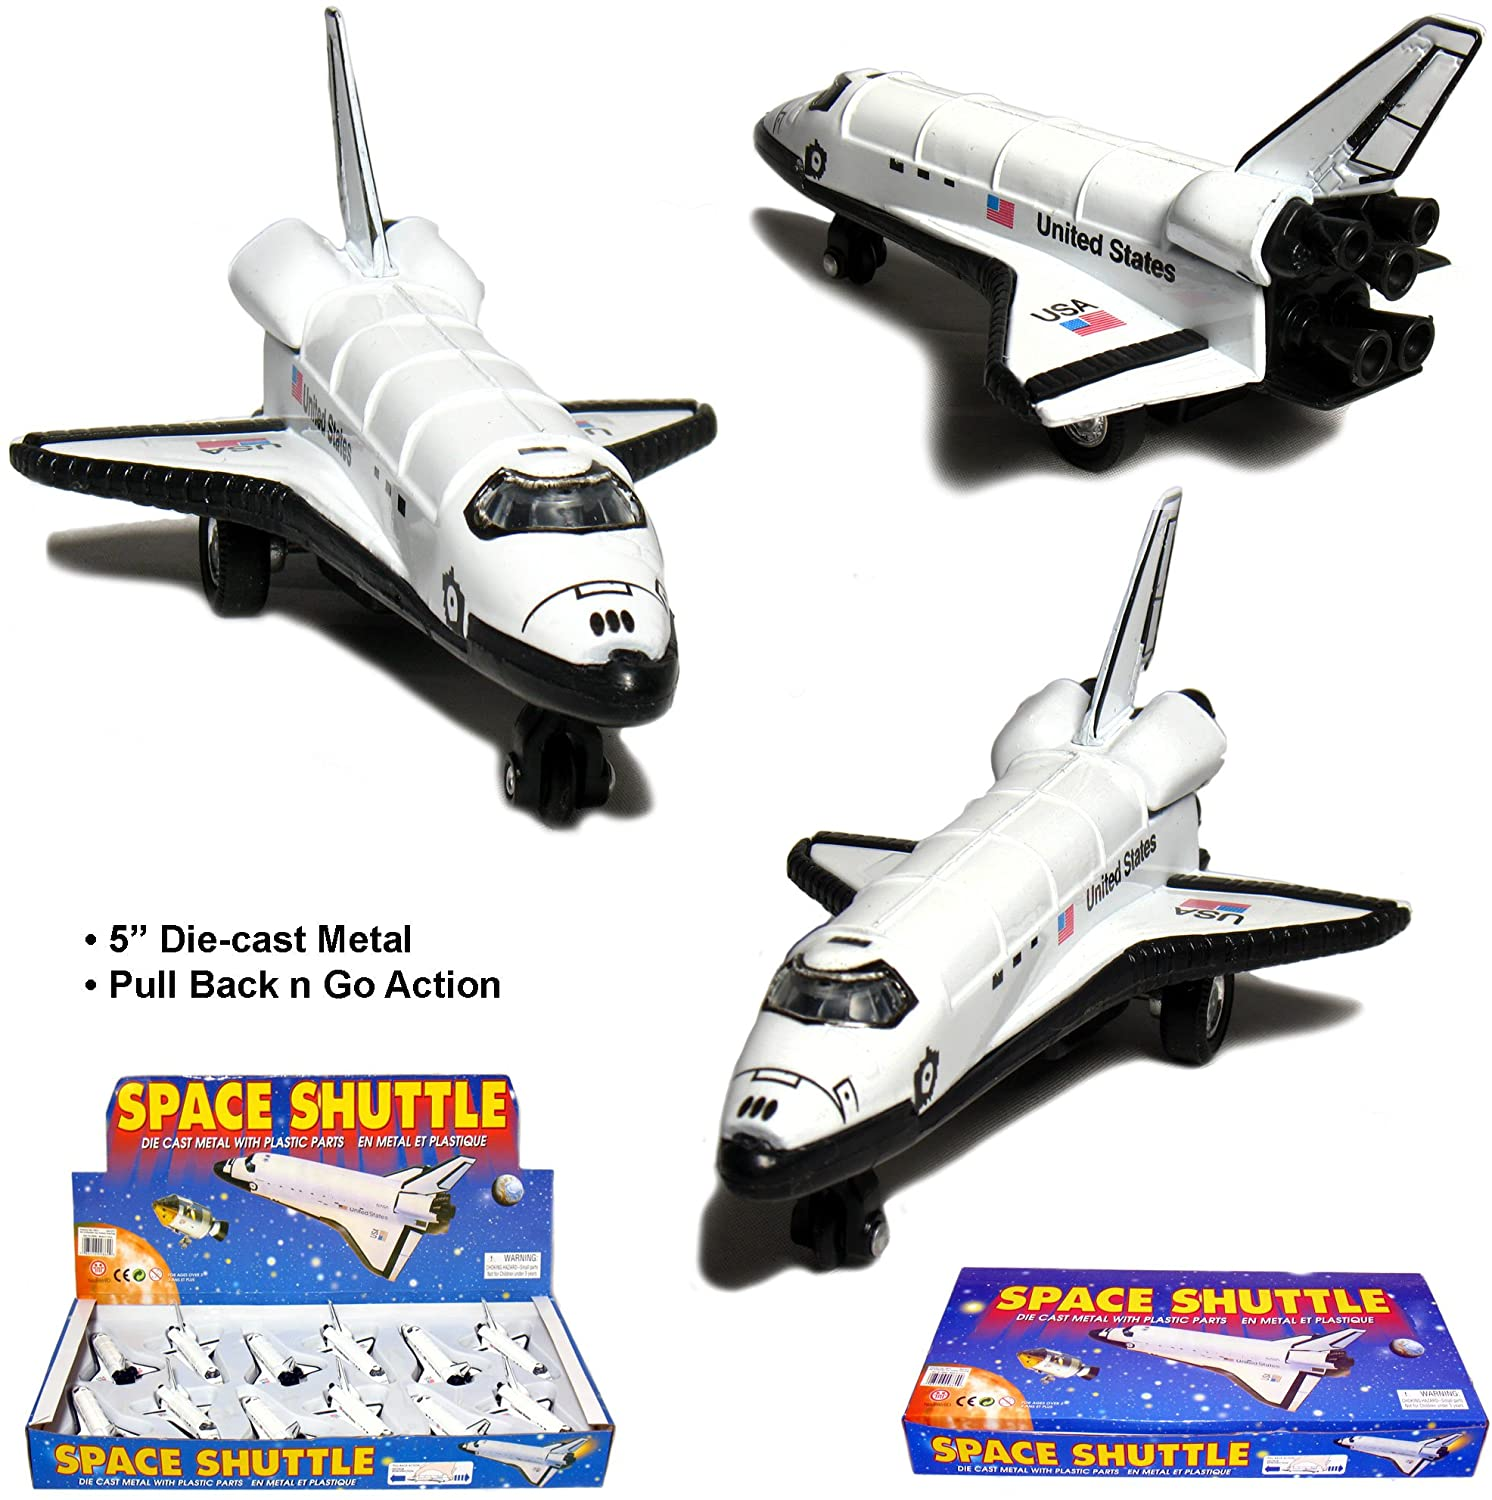 Planes Box 12 Space Shuttle, 5